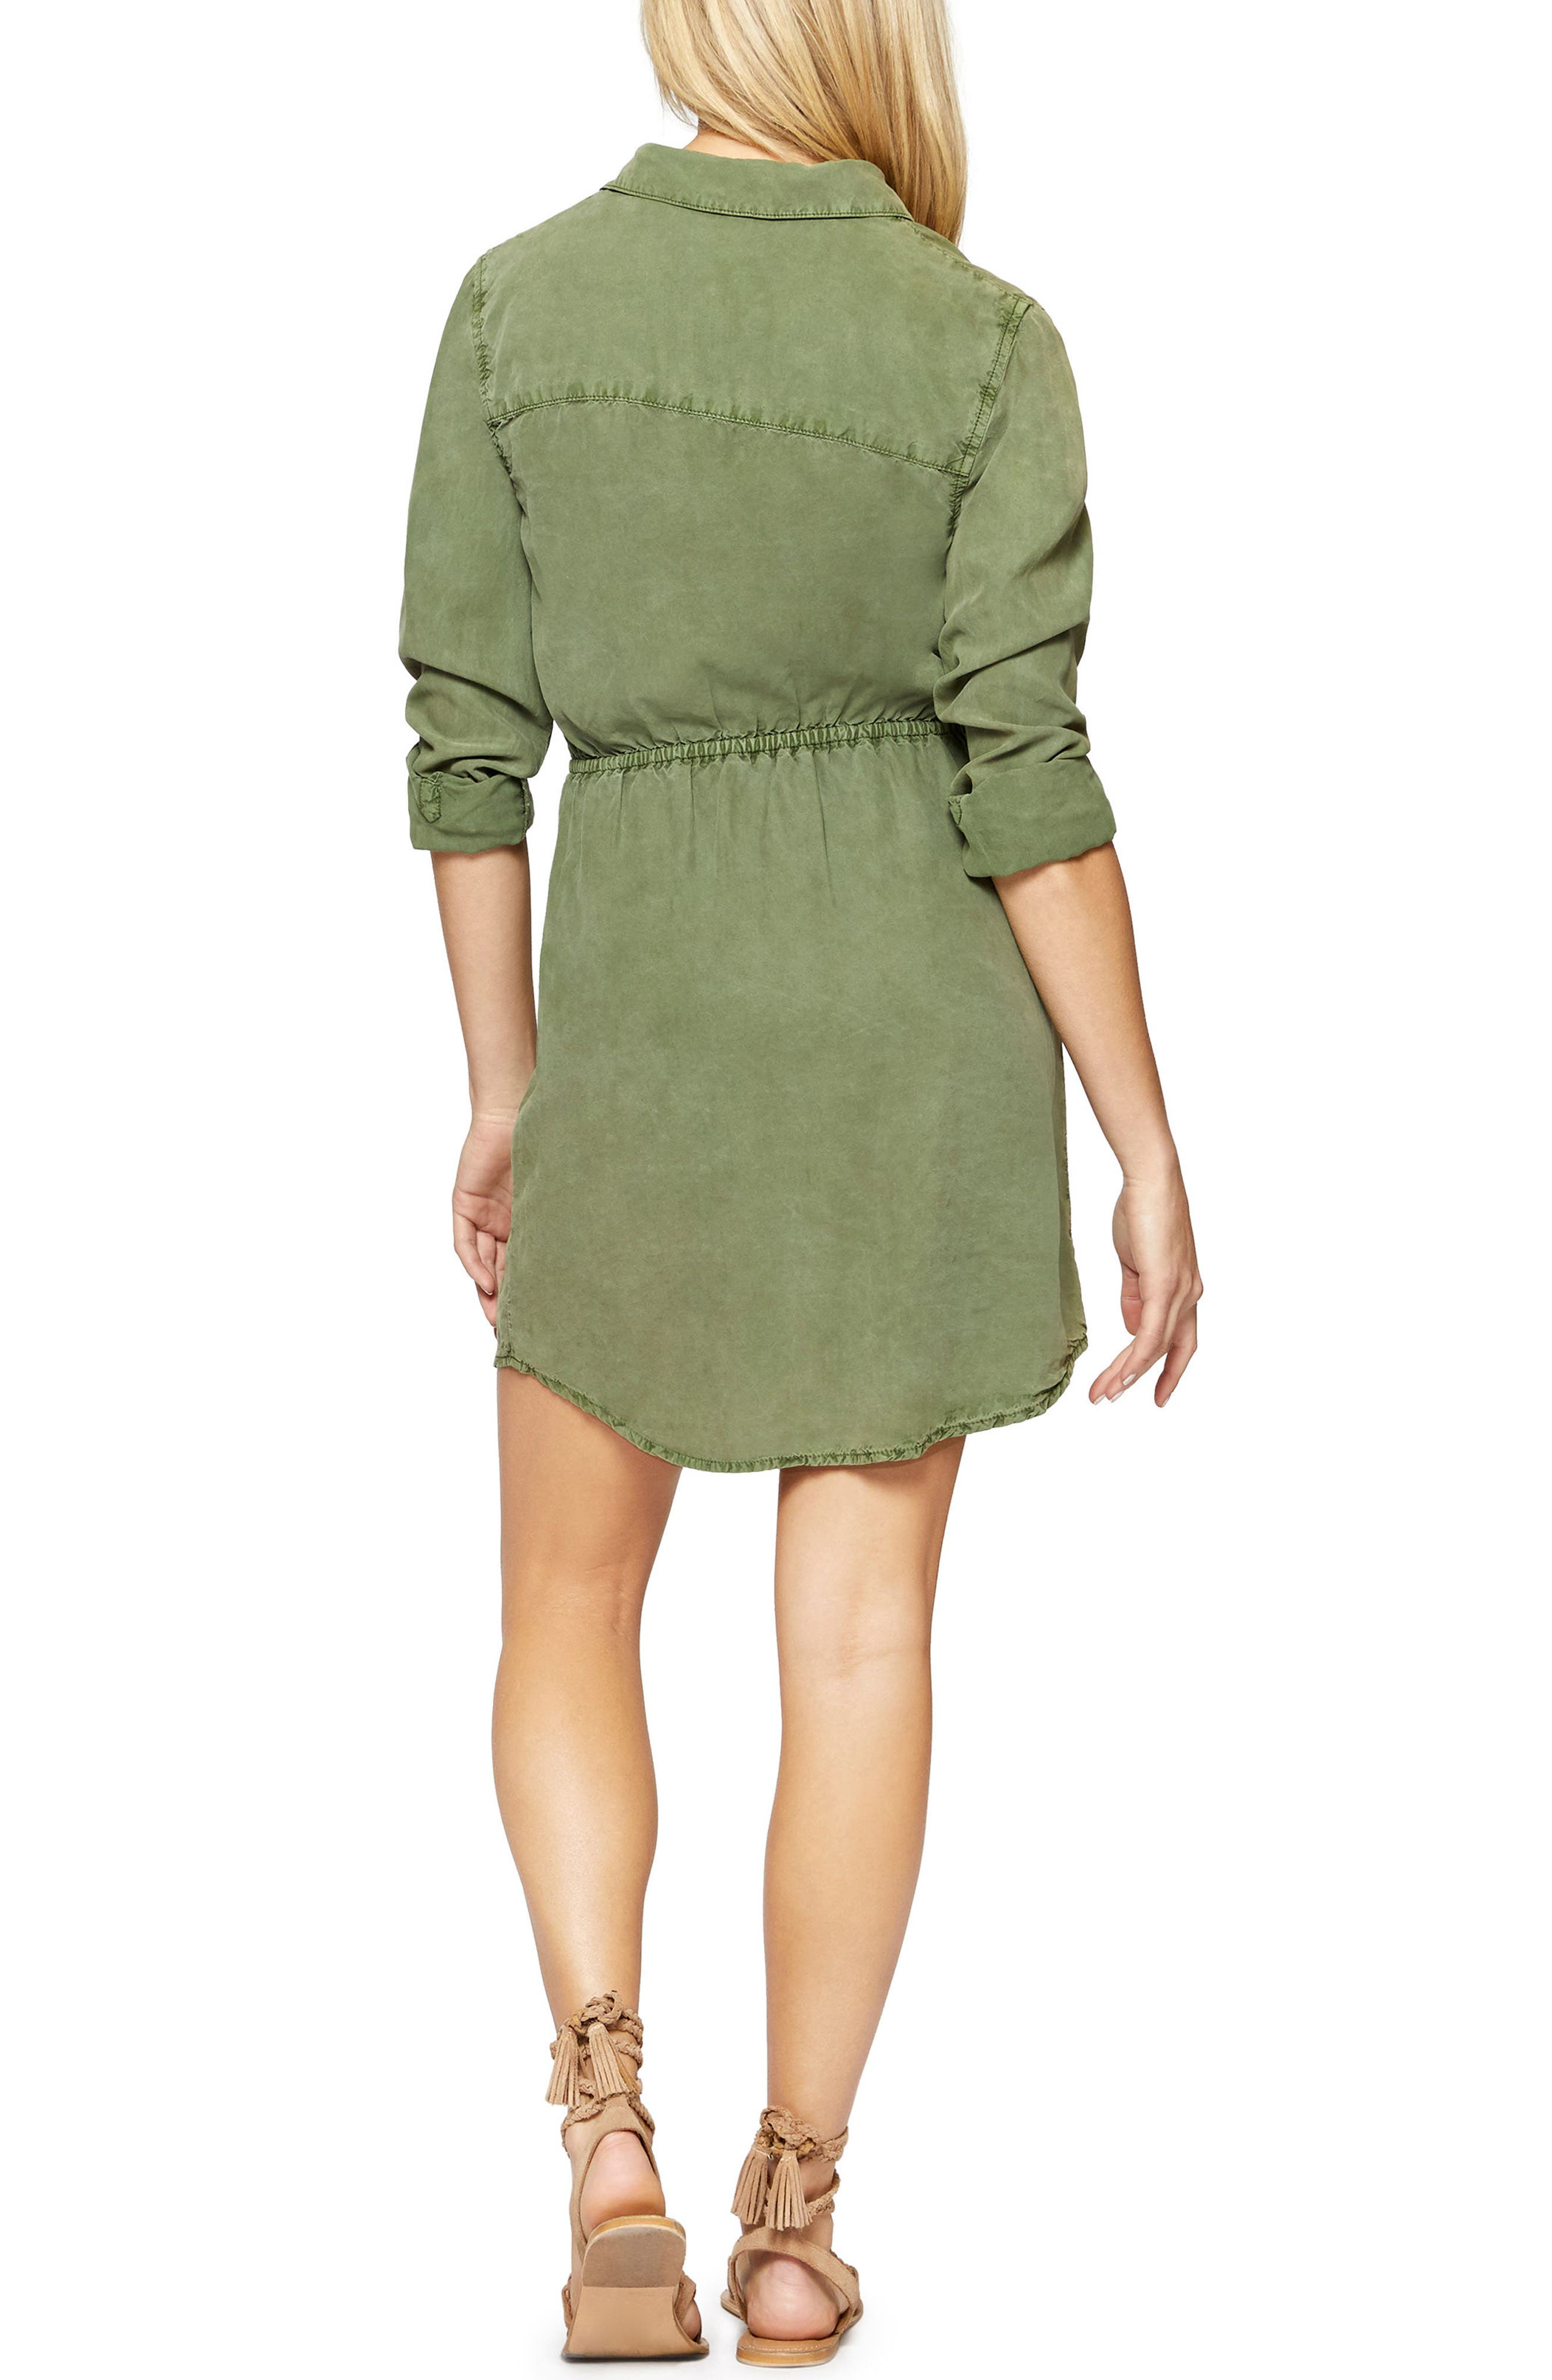 Forget Me Knot Shirtdress,                             Alternate thumbnail 2, color,                             300